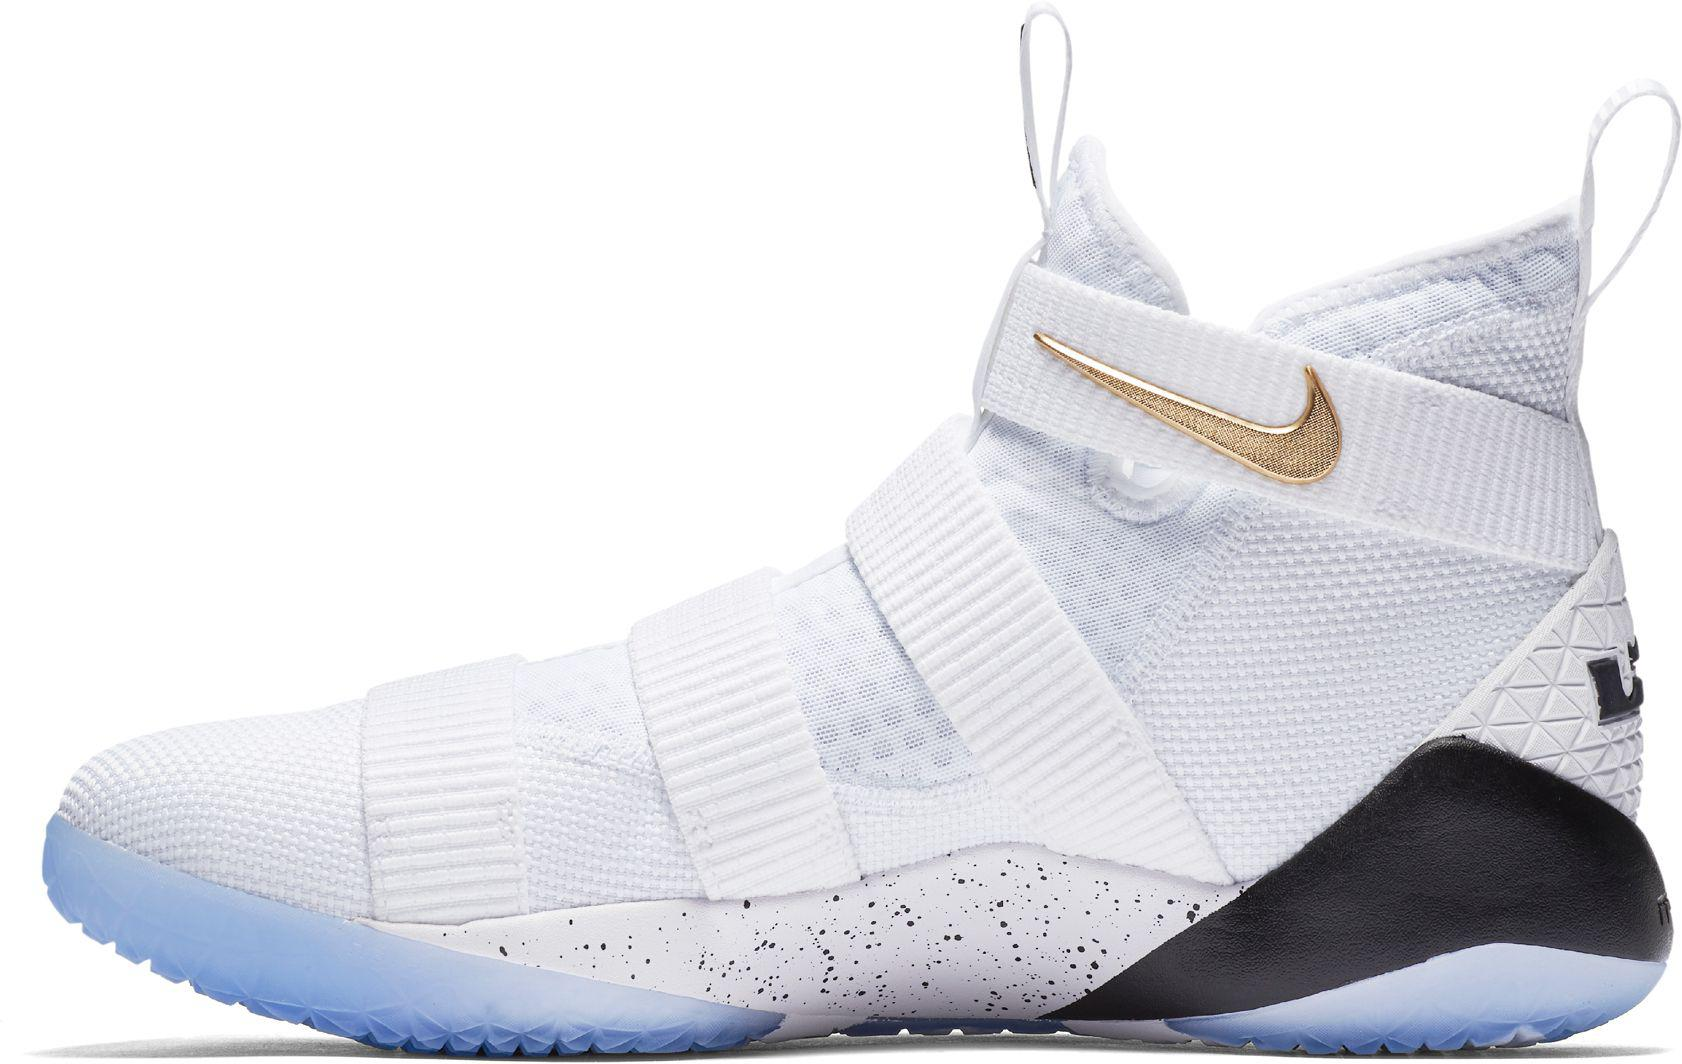 sports shoes 443a9 2774e Men's White Zoom Lebron Soldier Xi Basketball Shoes